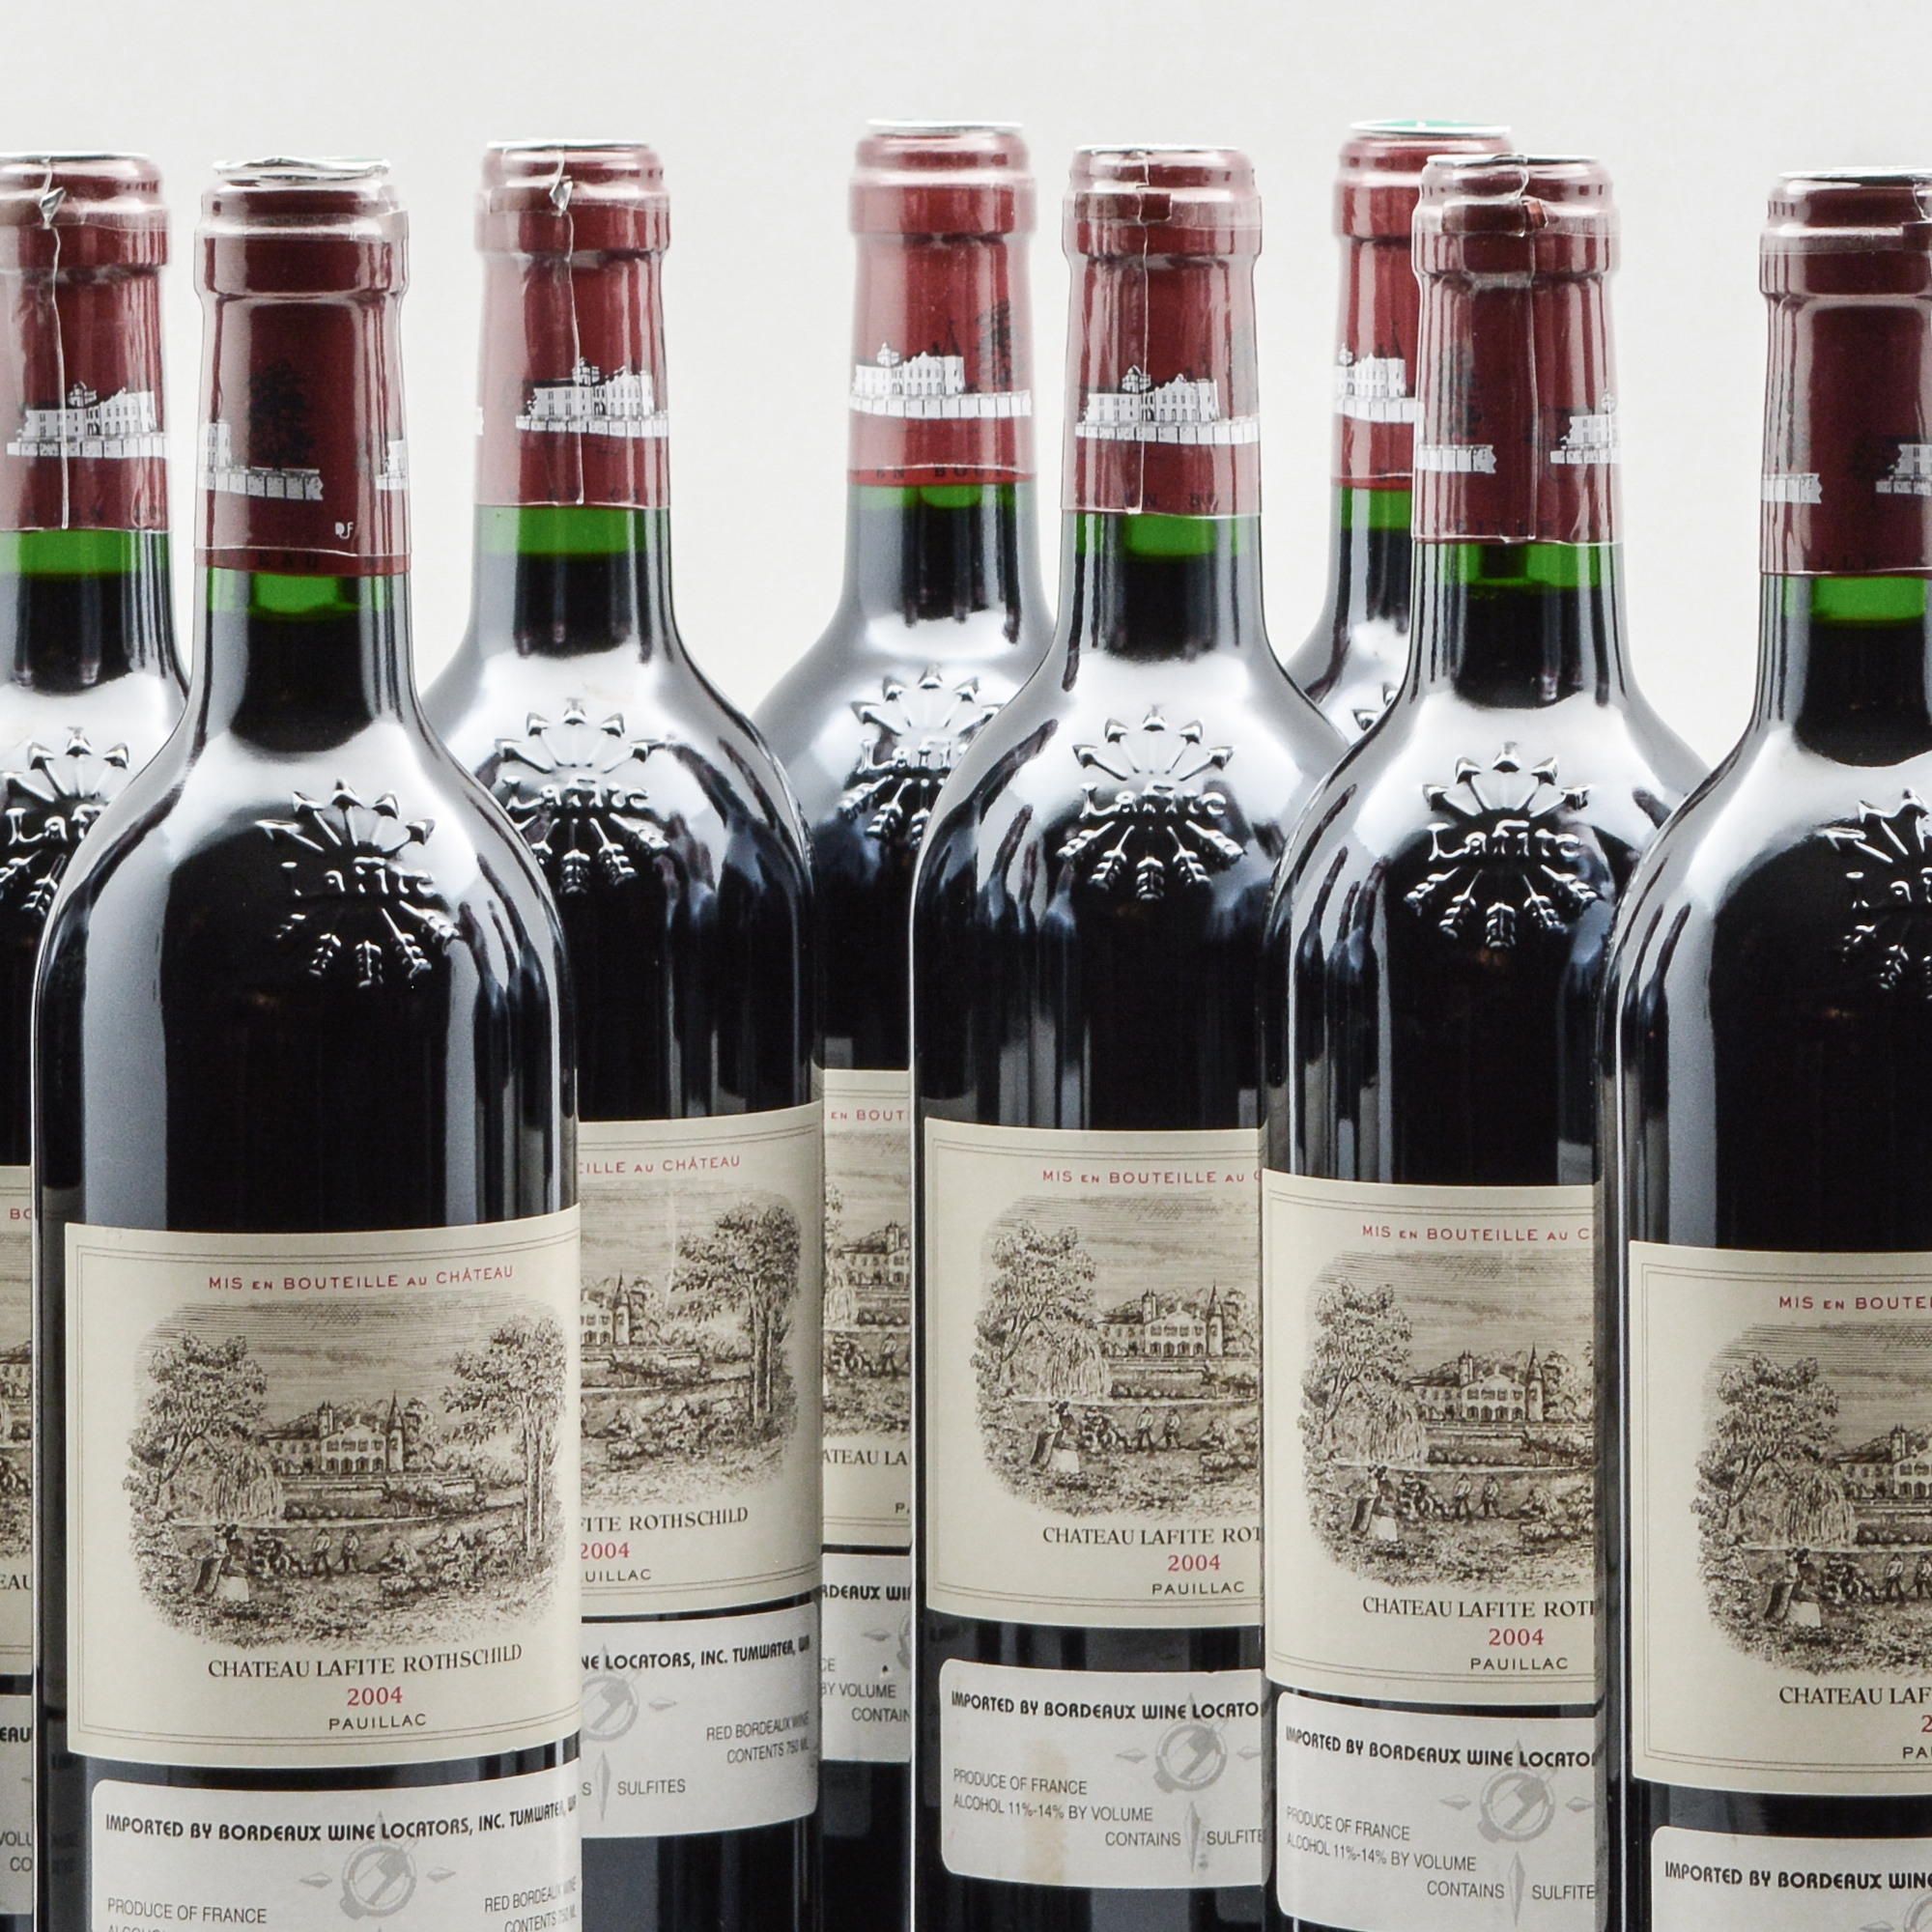 Chateau Lafite Rothschild 2004, 12 bottles